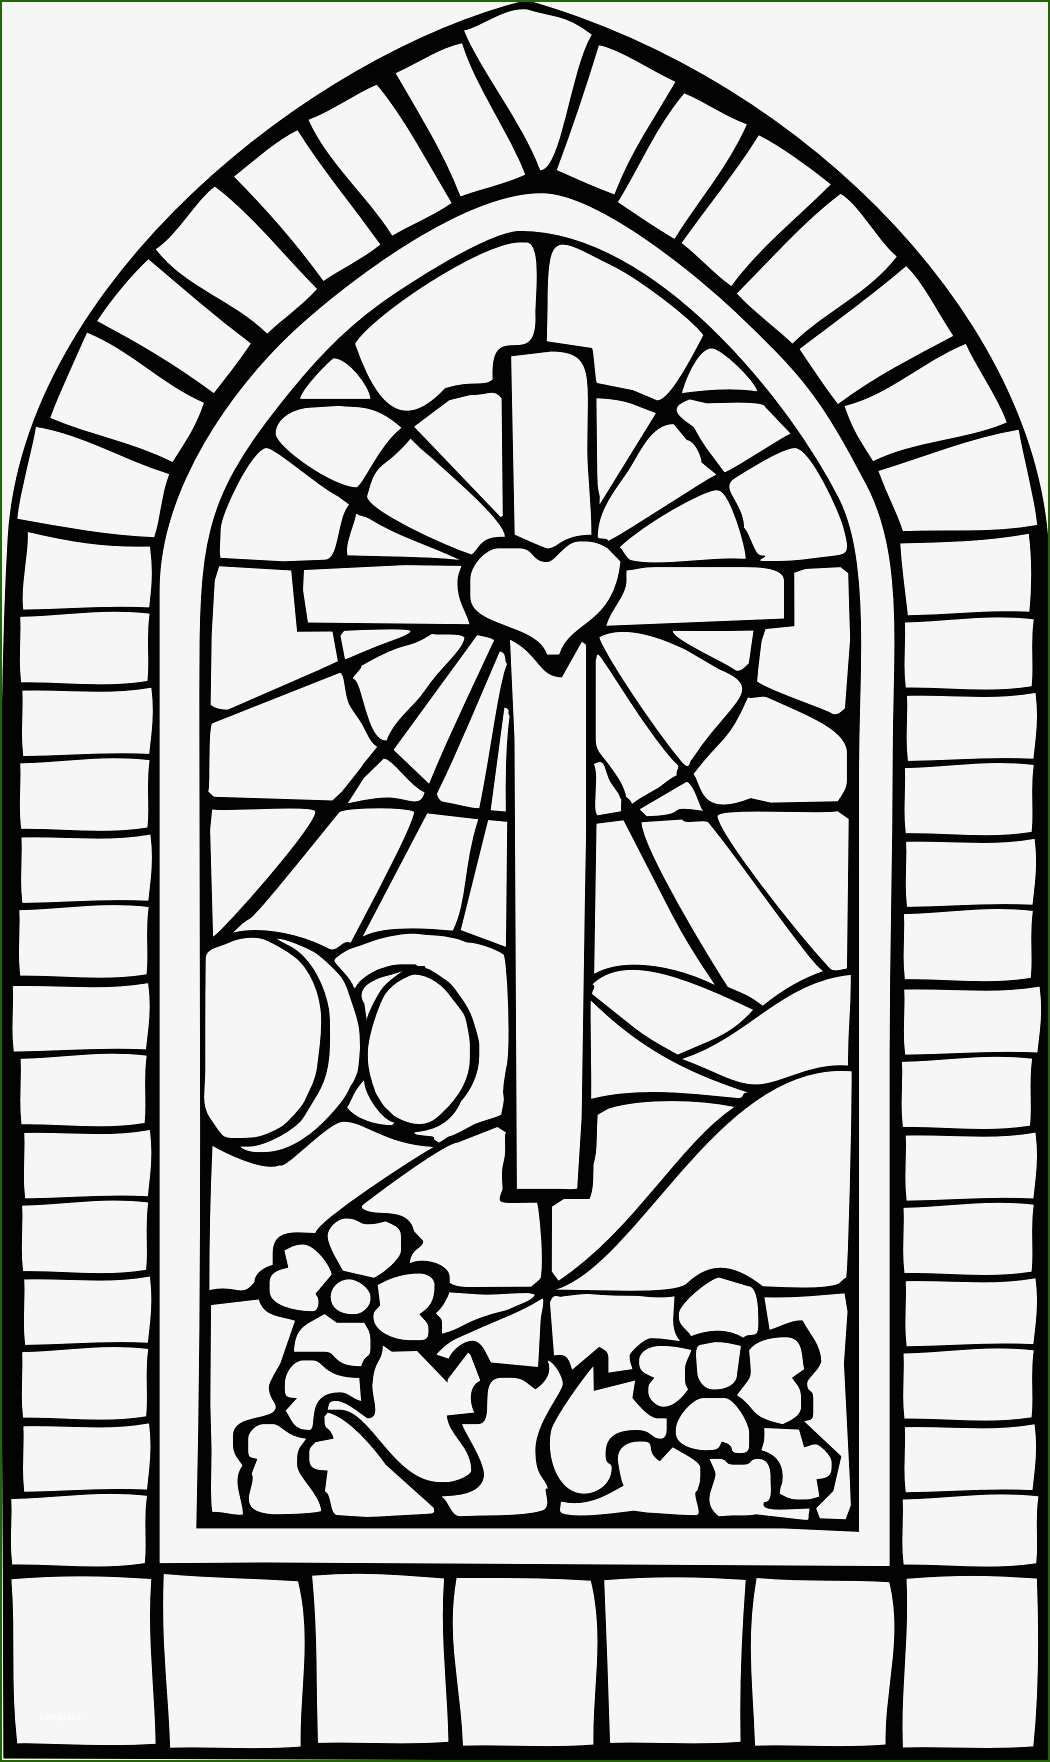 Unusual Stained Glass Window Template In 2020 Cross Coloring Page Easter Coloring Pages Bible Coloring Pages